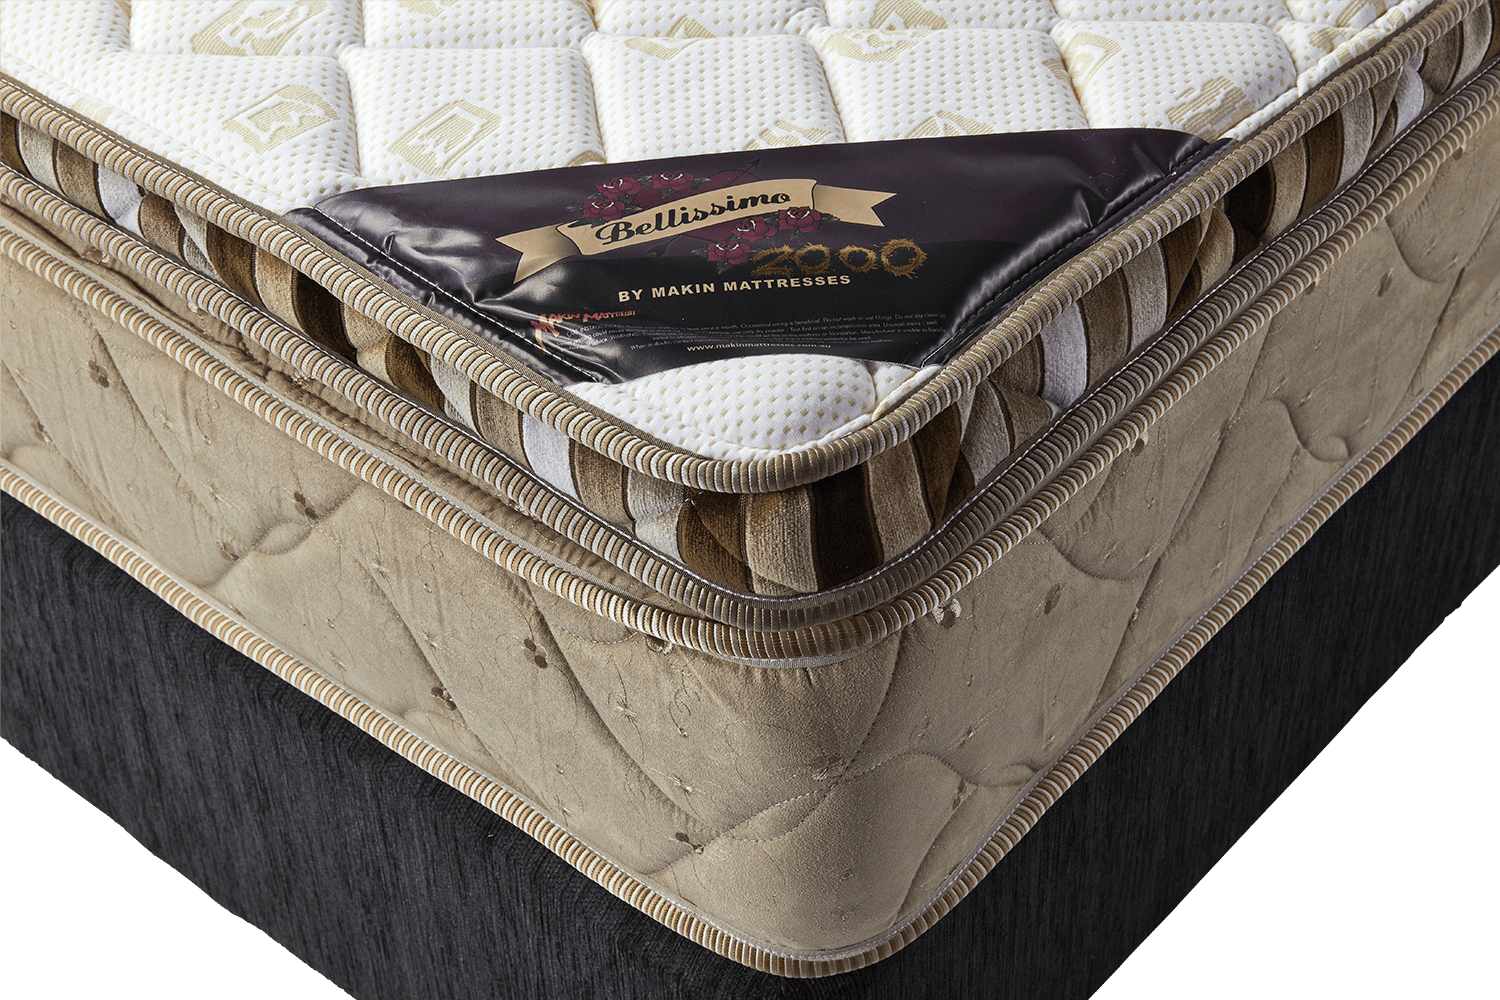 makin mattresses bellissimo 2000 mattress queen single super king double size